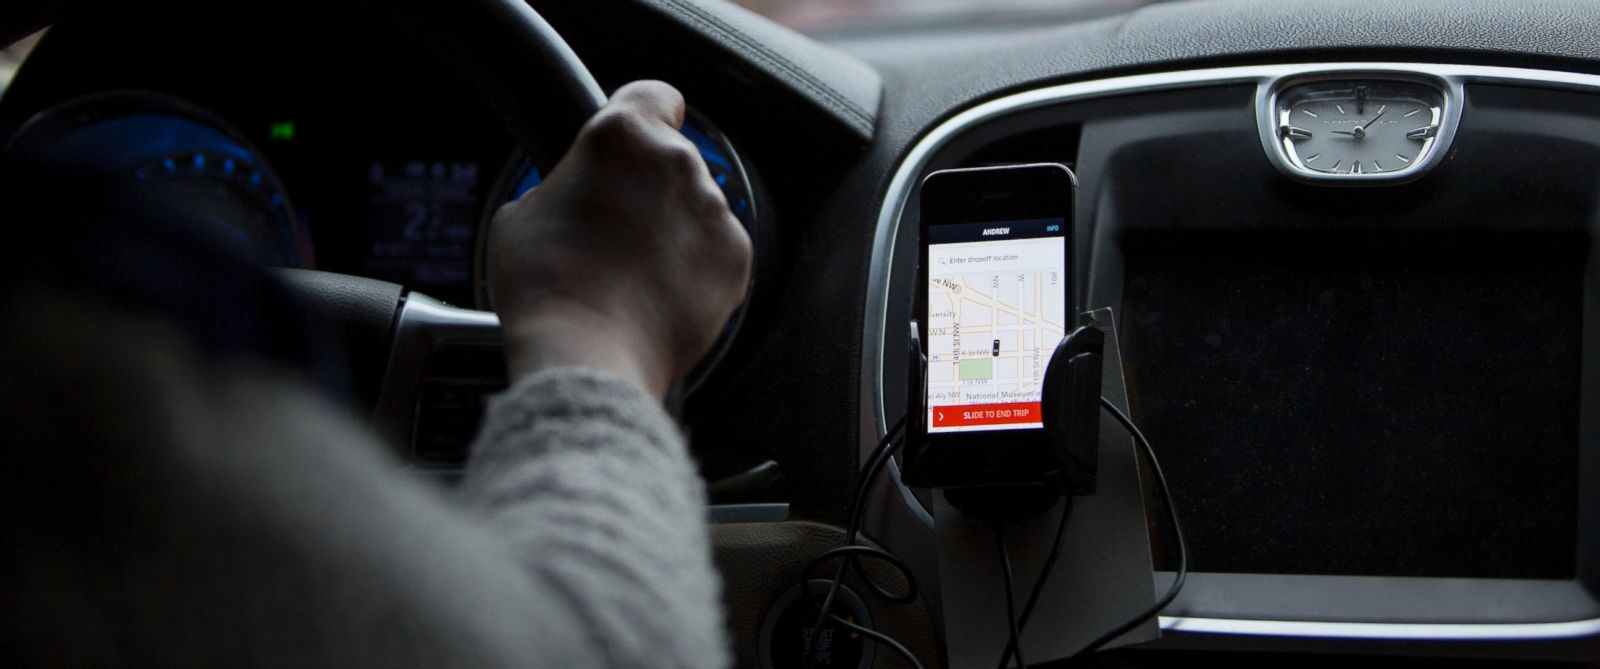 PHOTO: The Uber application runs on a drivers iPhone during an Uber ride in Washington, D.C., April 8, 2015.